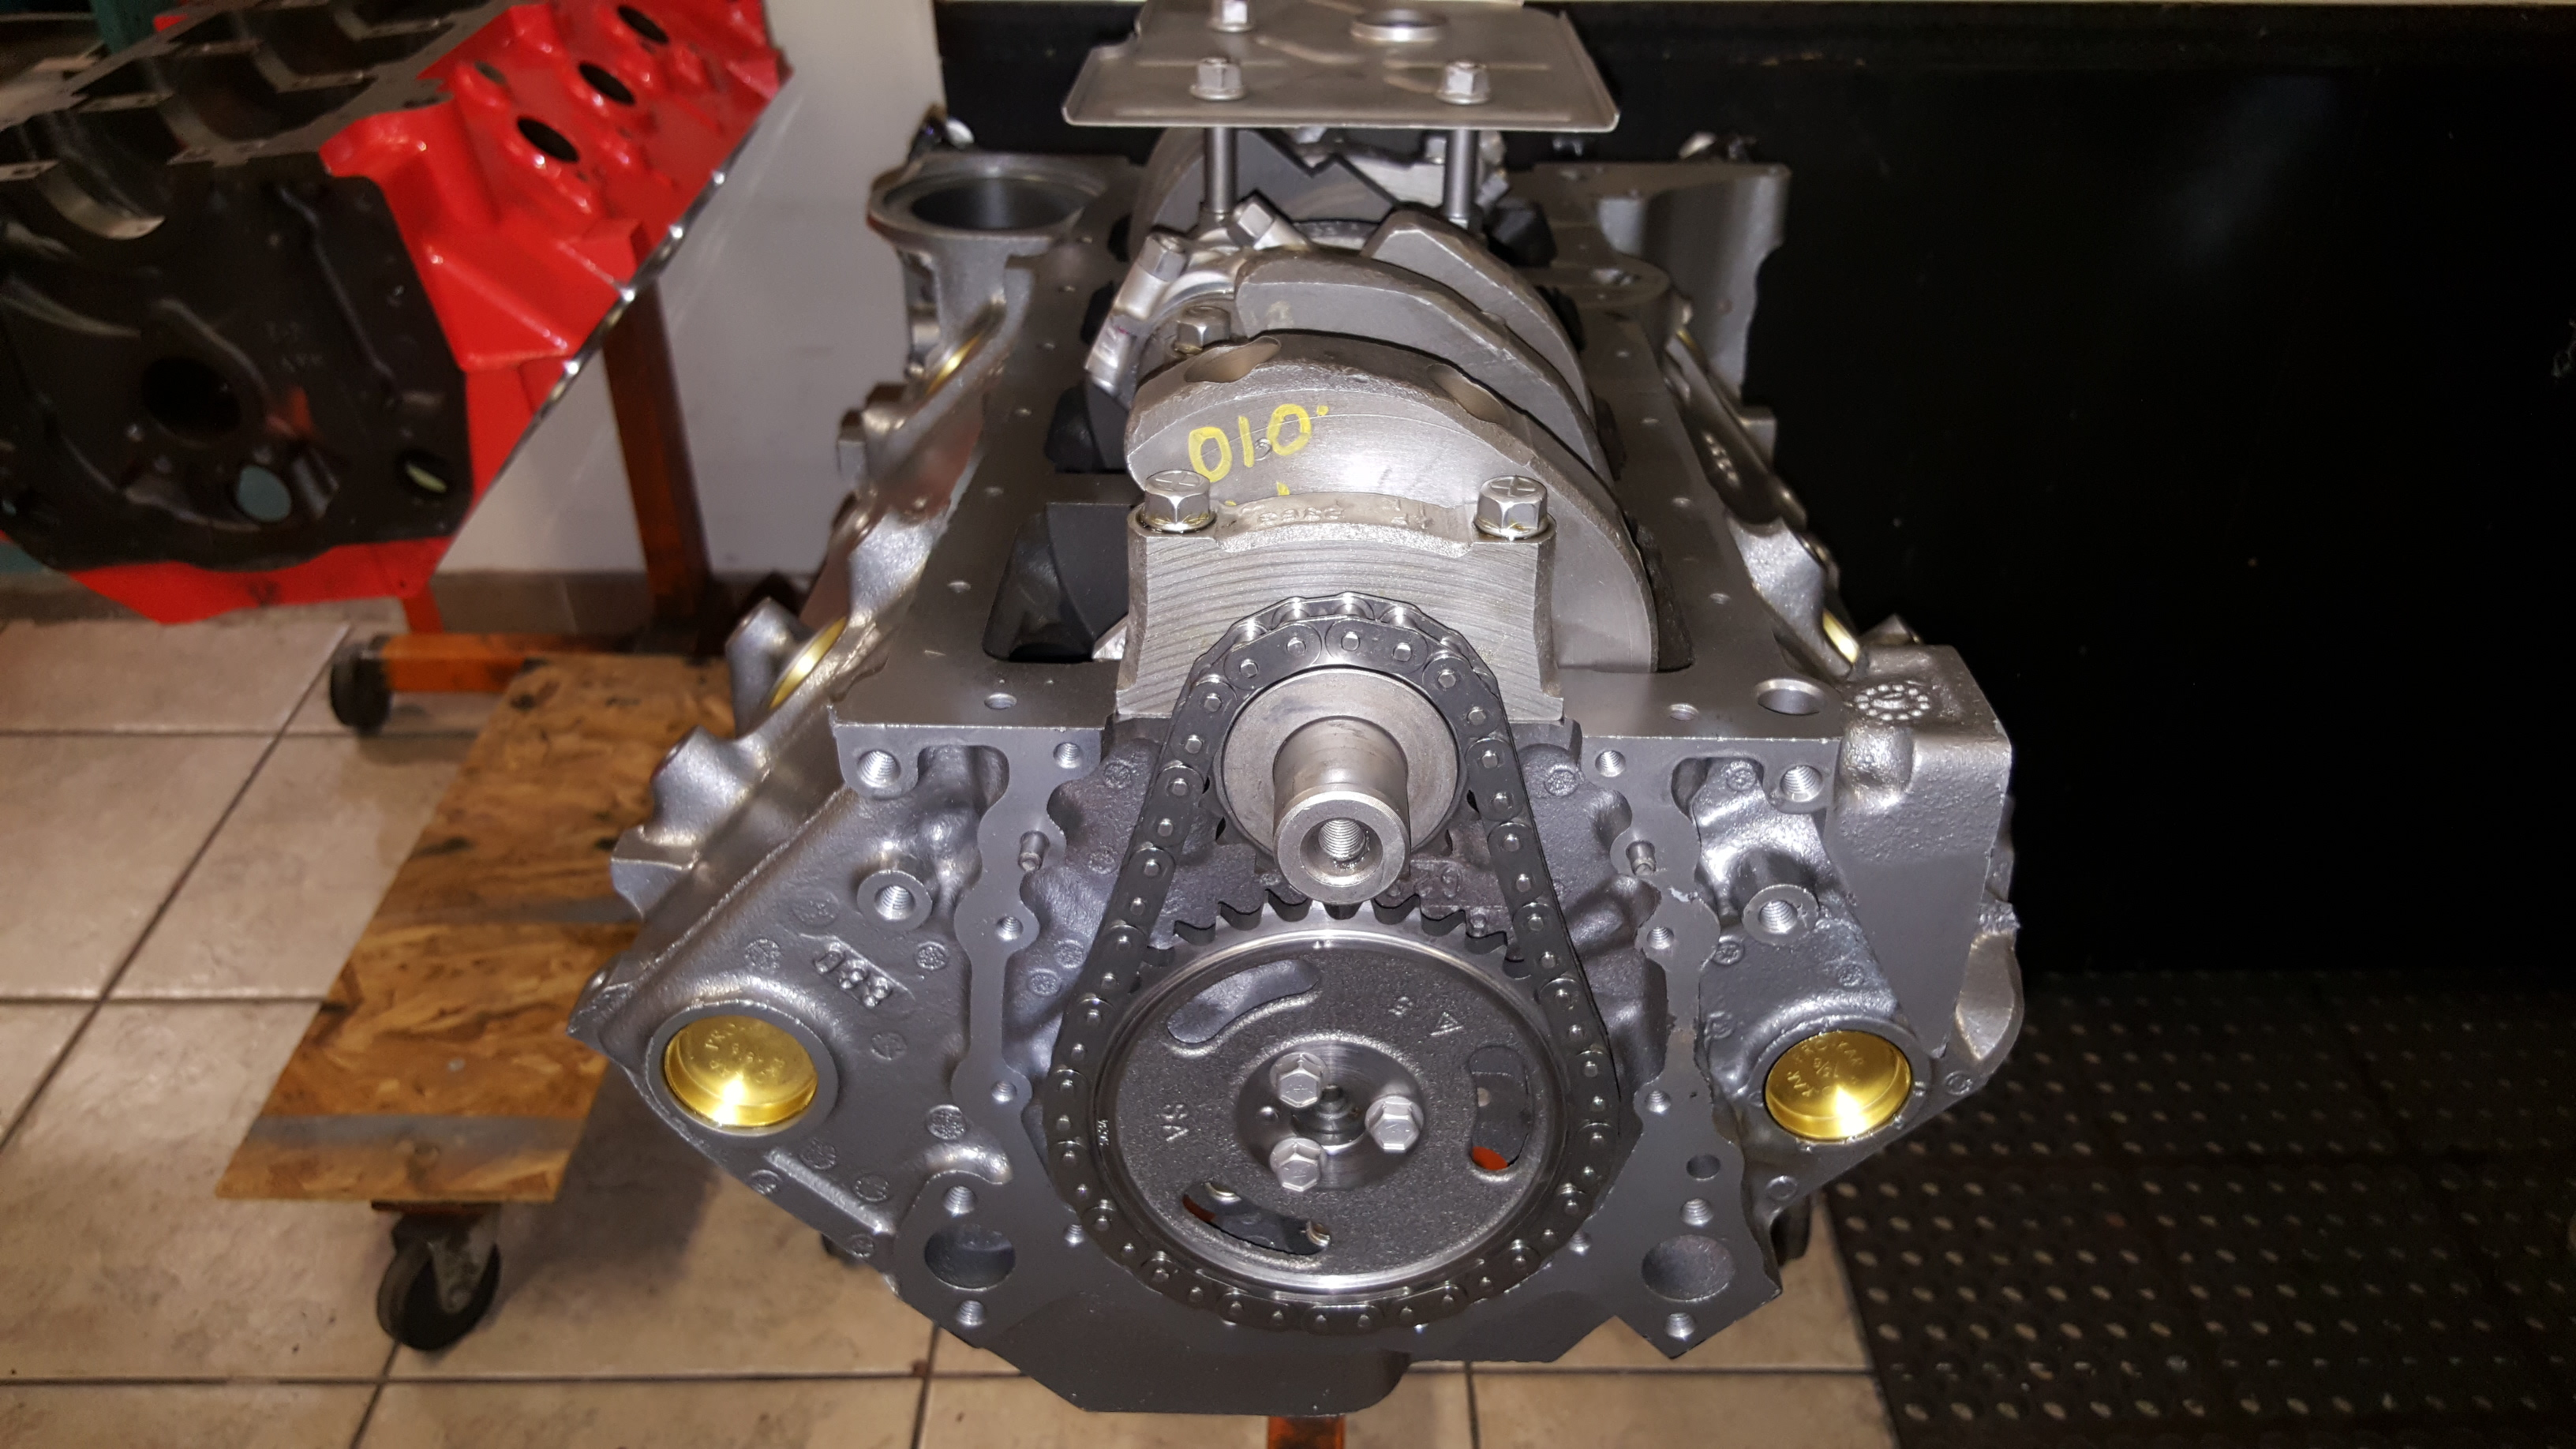 350 Chevy Small Block Engine Rebuilding - Motor Mission